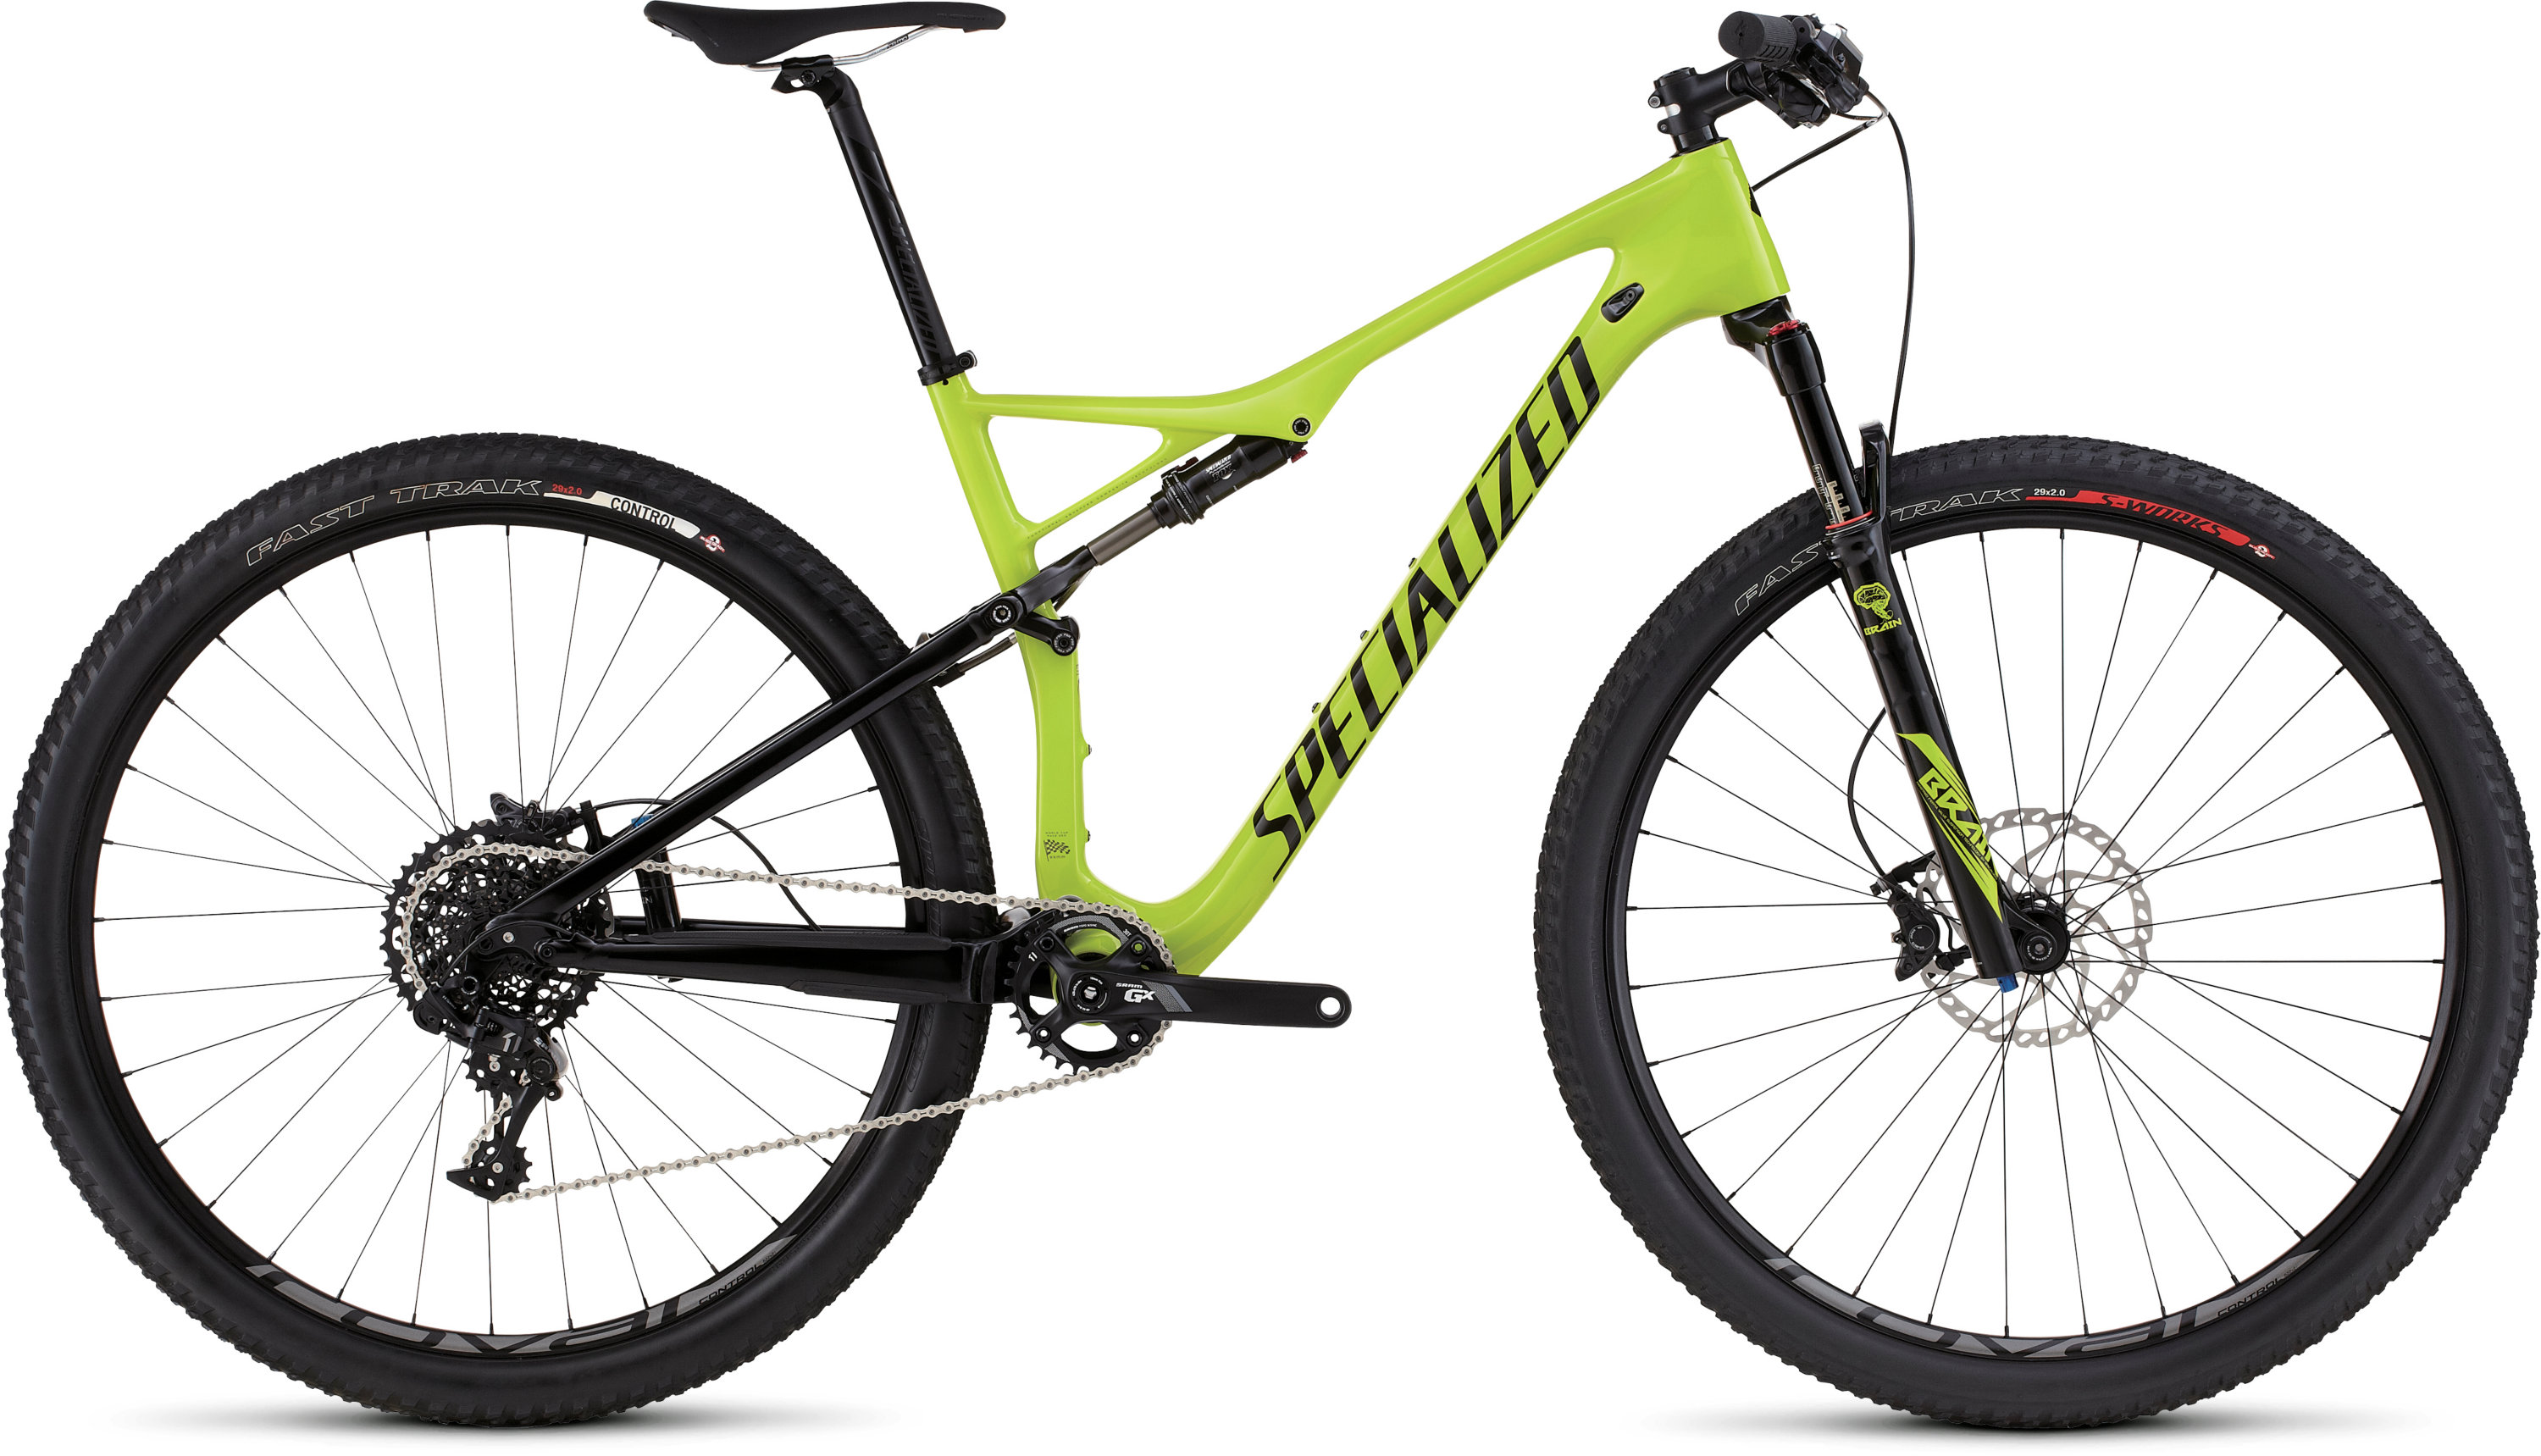 SPECIALIZED EPIC FSR ELITE CARBON WC 29 HYP/BLK M - SPECIALIZED EPIC FSR ELITE CARBON WC 29 HYP/BLK M